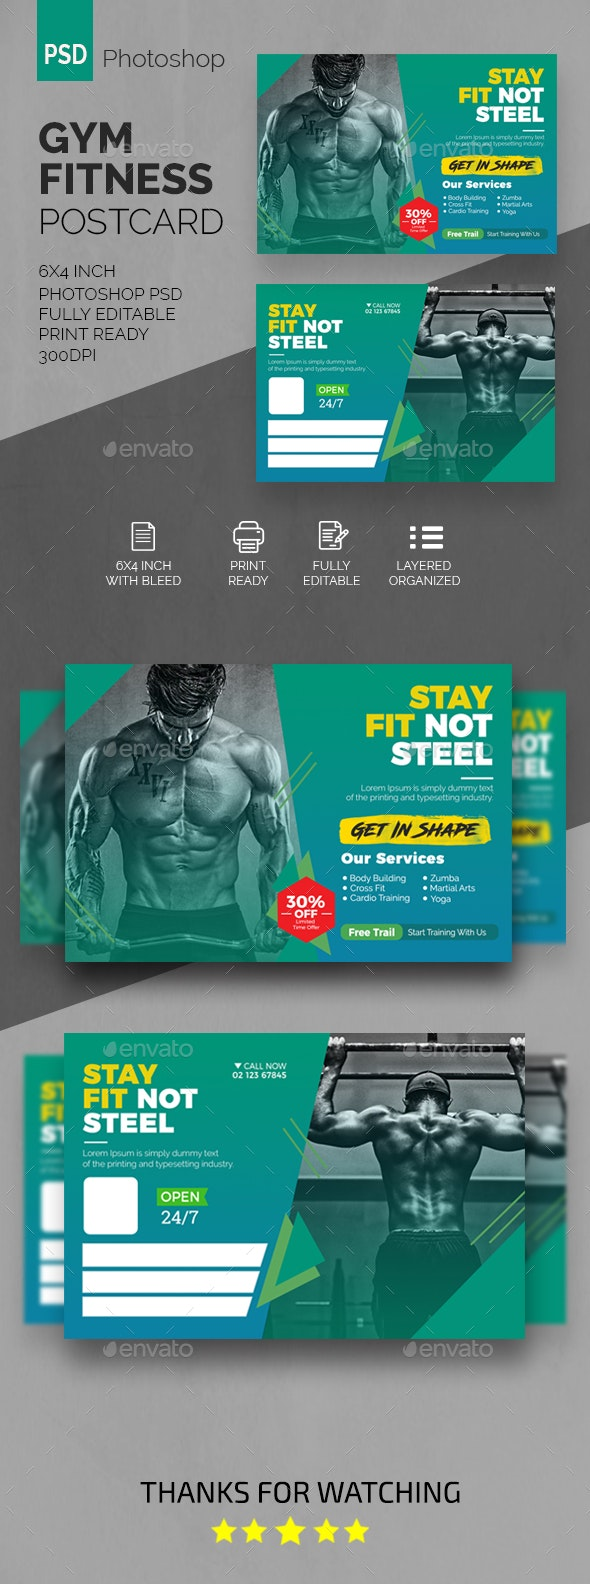 GYM Fitness Postcard - Cards & Invites Print Templates